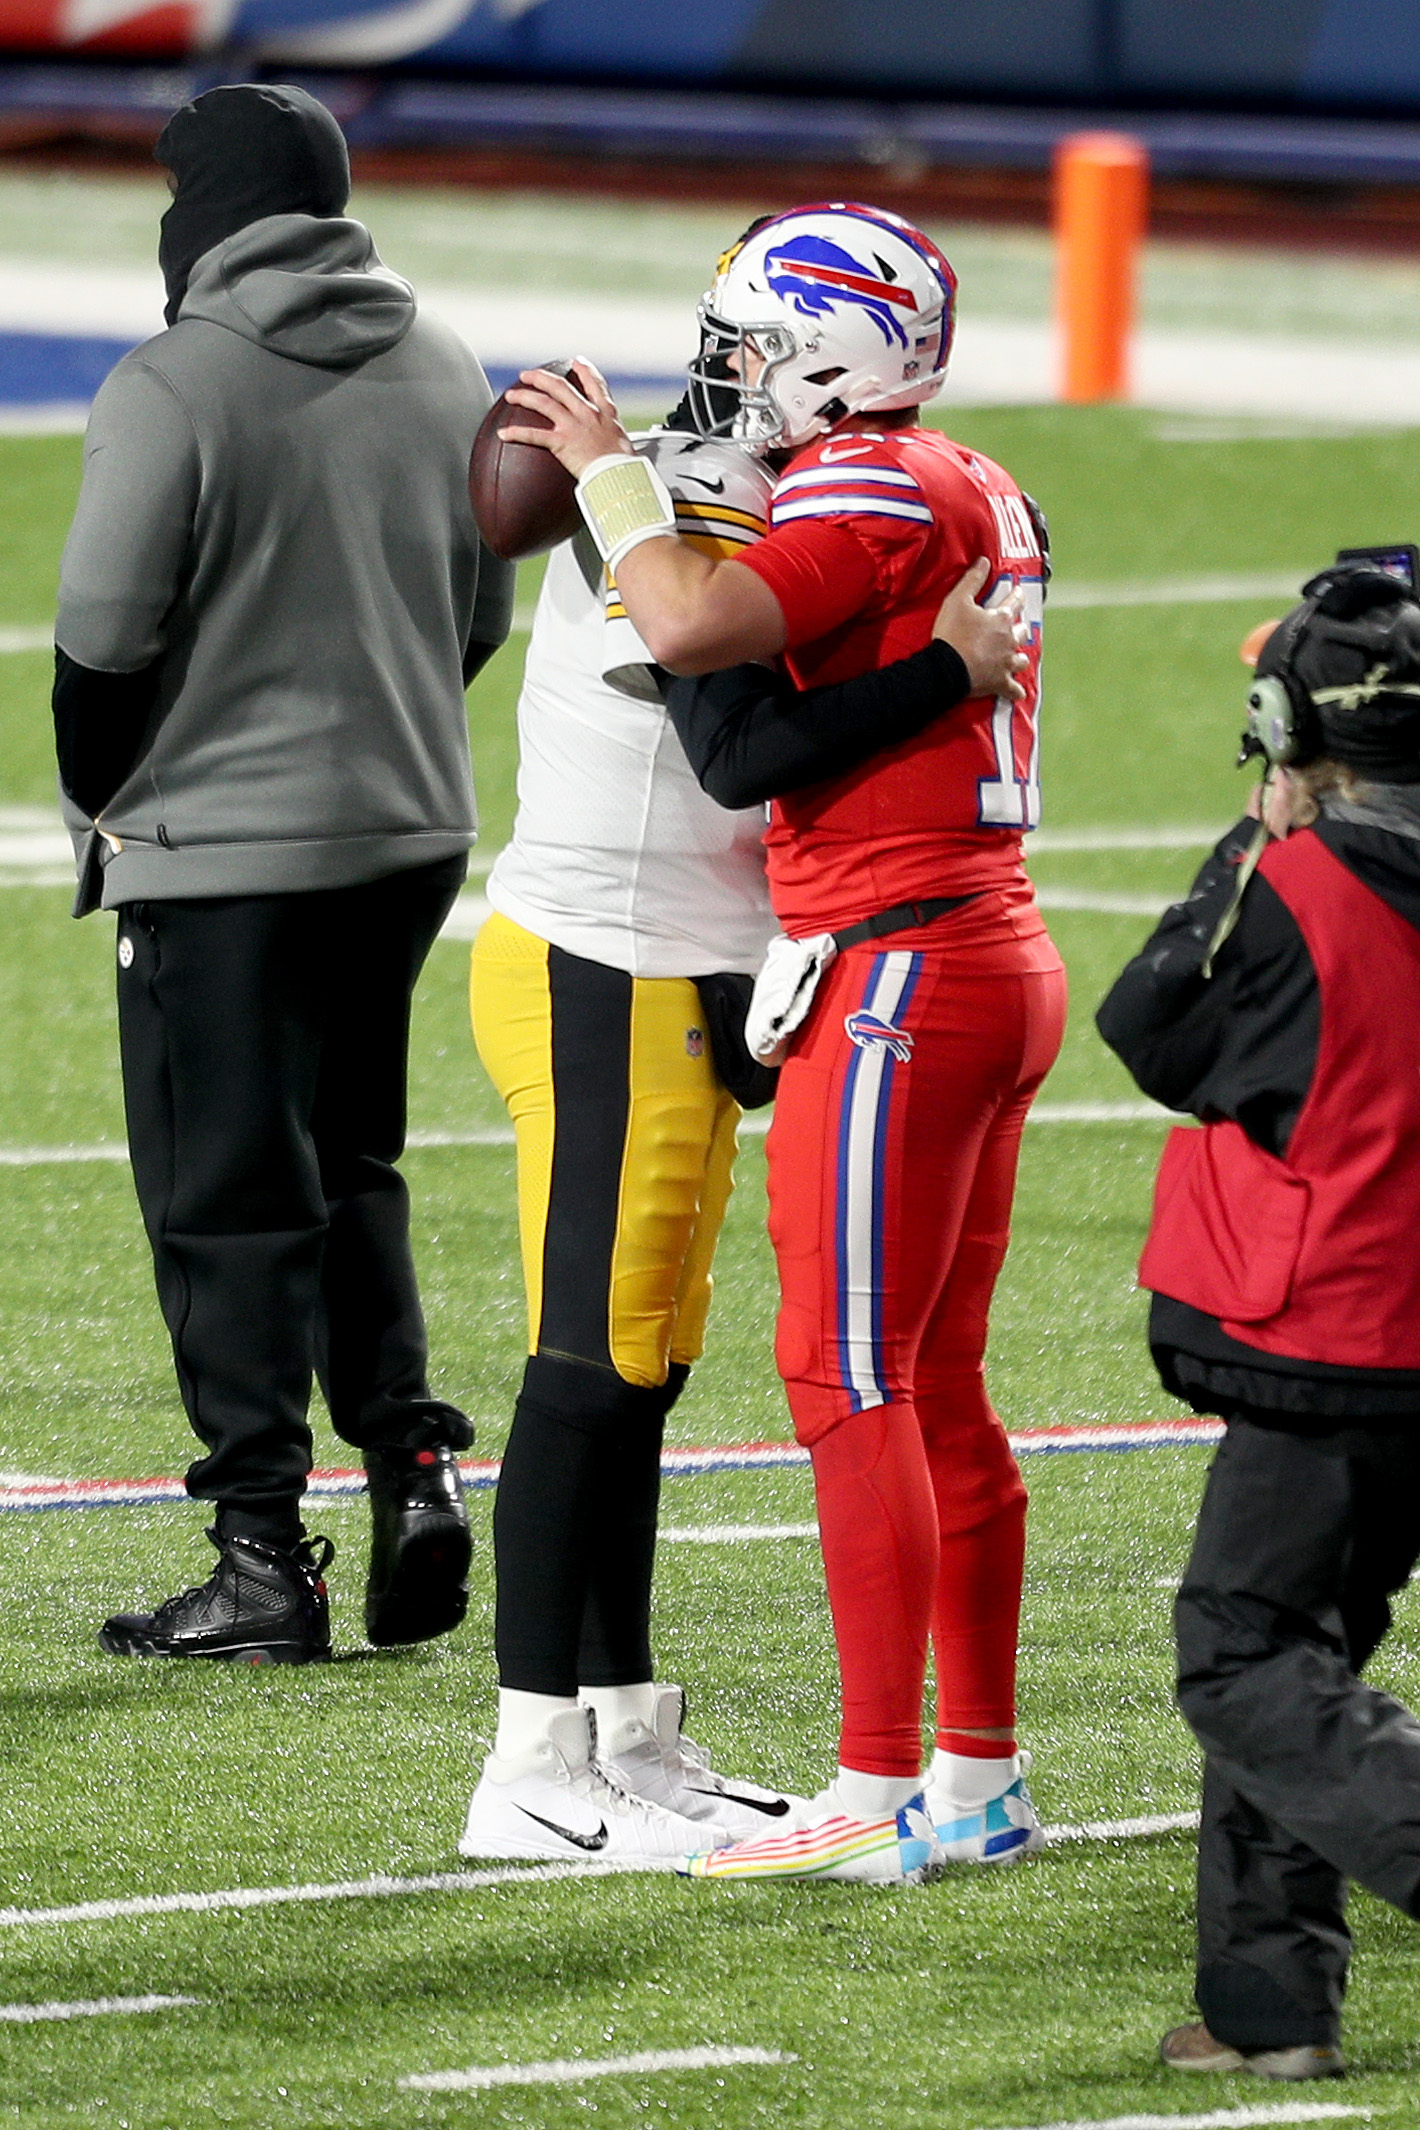 Ben Roethlisberger #7 of the Pittsburgh Steelers and Josh Allen #17 of the Buffalo Bills embrace after the Bills defeated the Steelers 26-15 at Bills Stadium on December 13, 2020 in Orchard Park, New York.